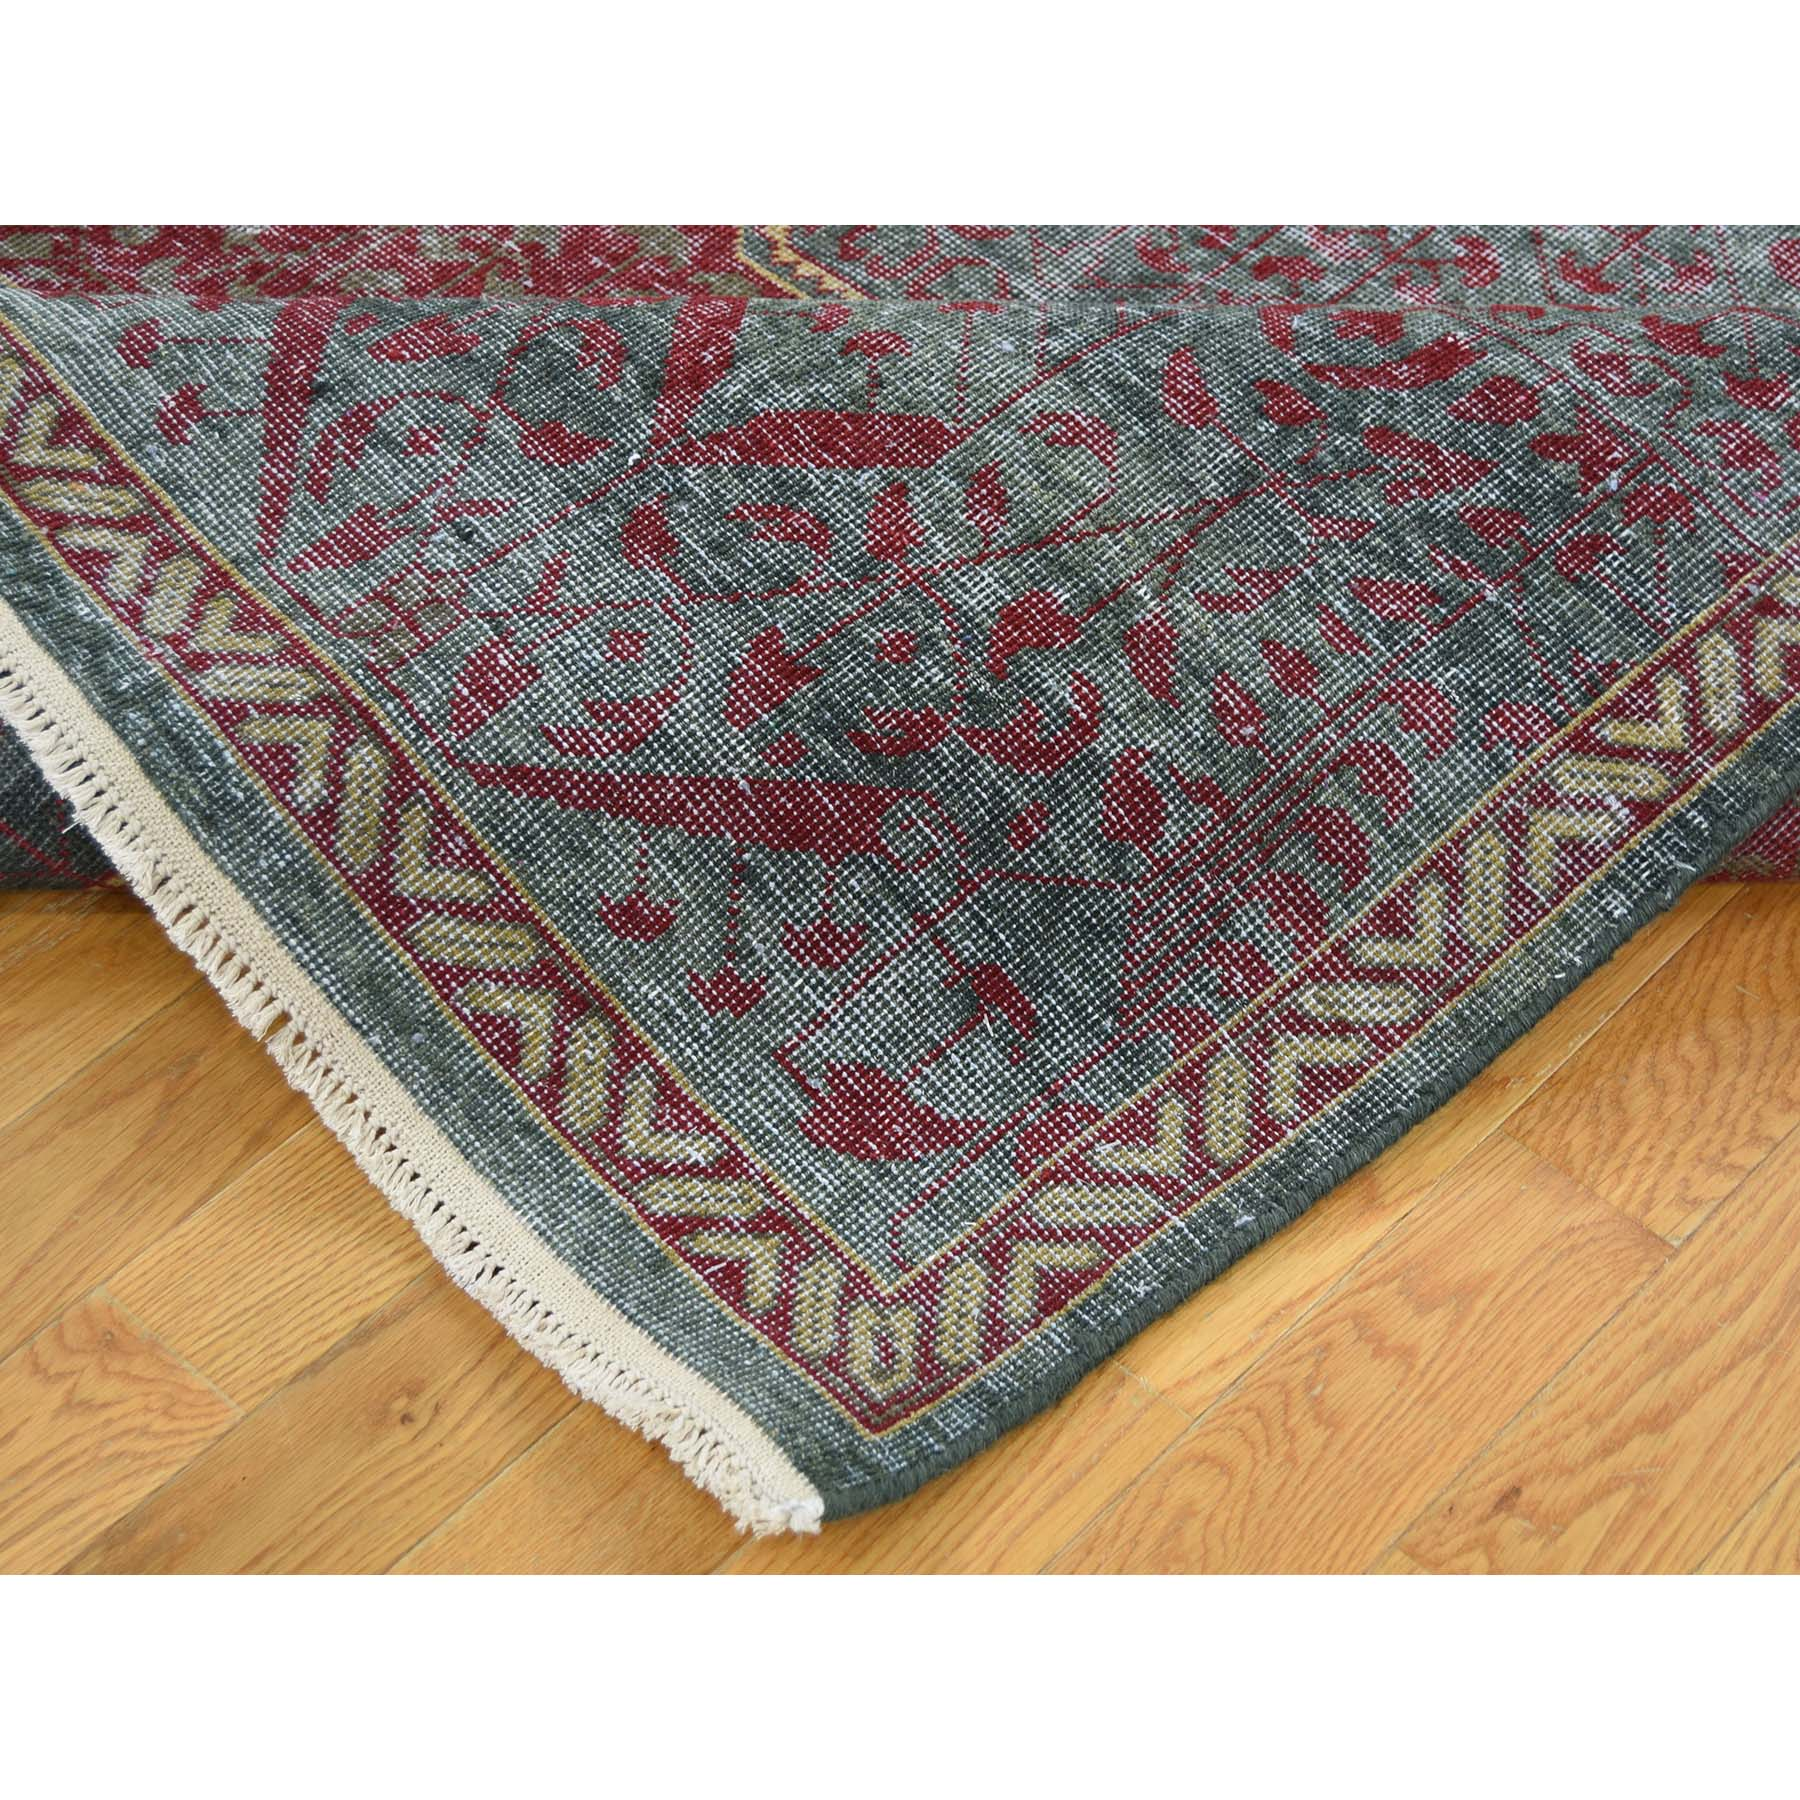 6-x9- Vintage Look Mamluk Zero Pile Shaved Low Worn Wool Rug